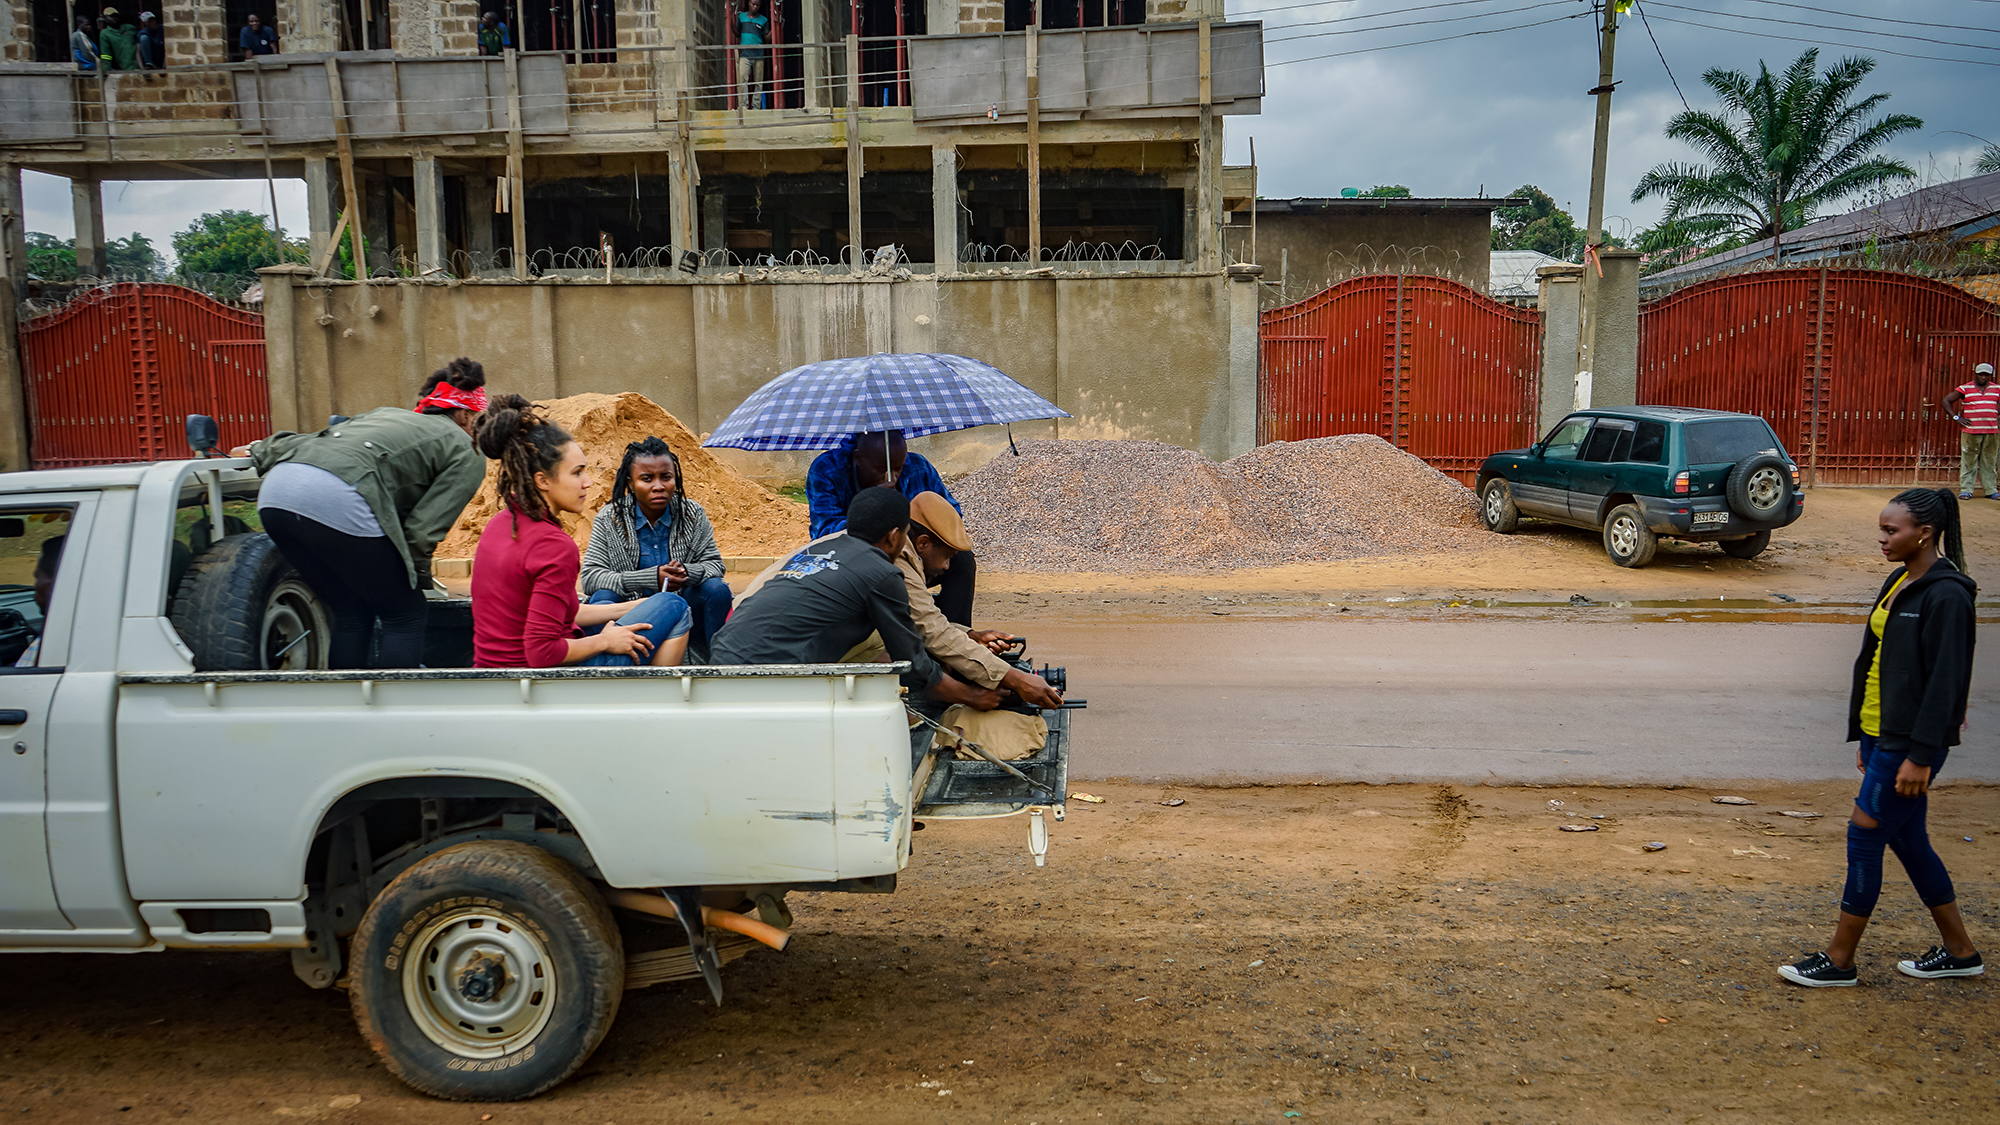 Ndaliko and a film team sit in the back of a white pickup truck and film a girl walking toward the truck's cab